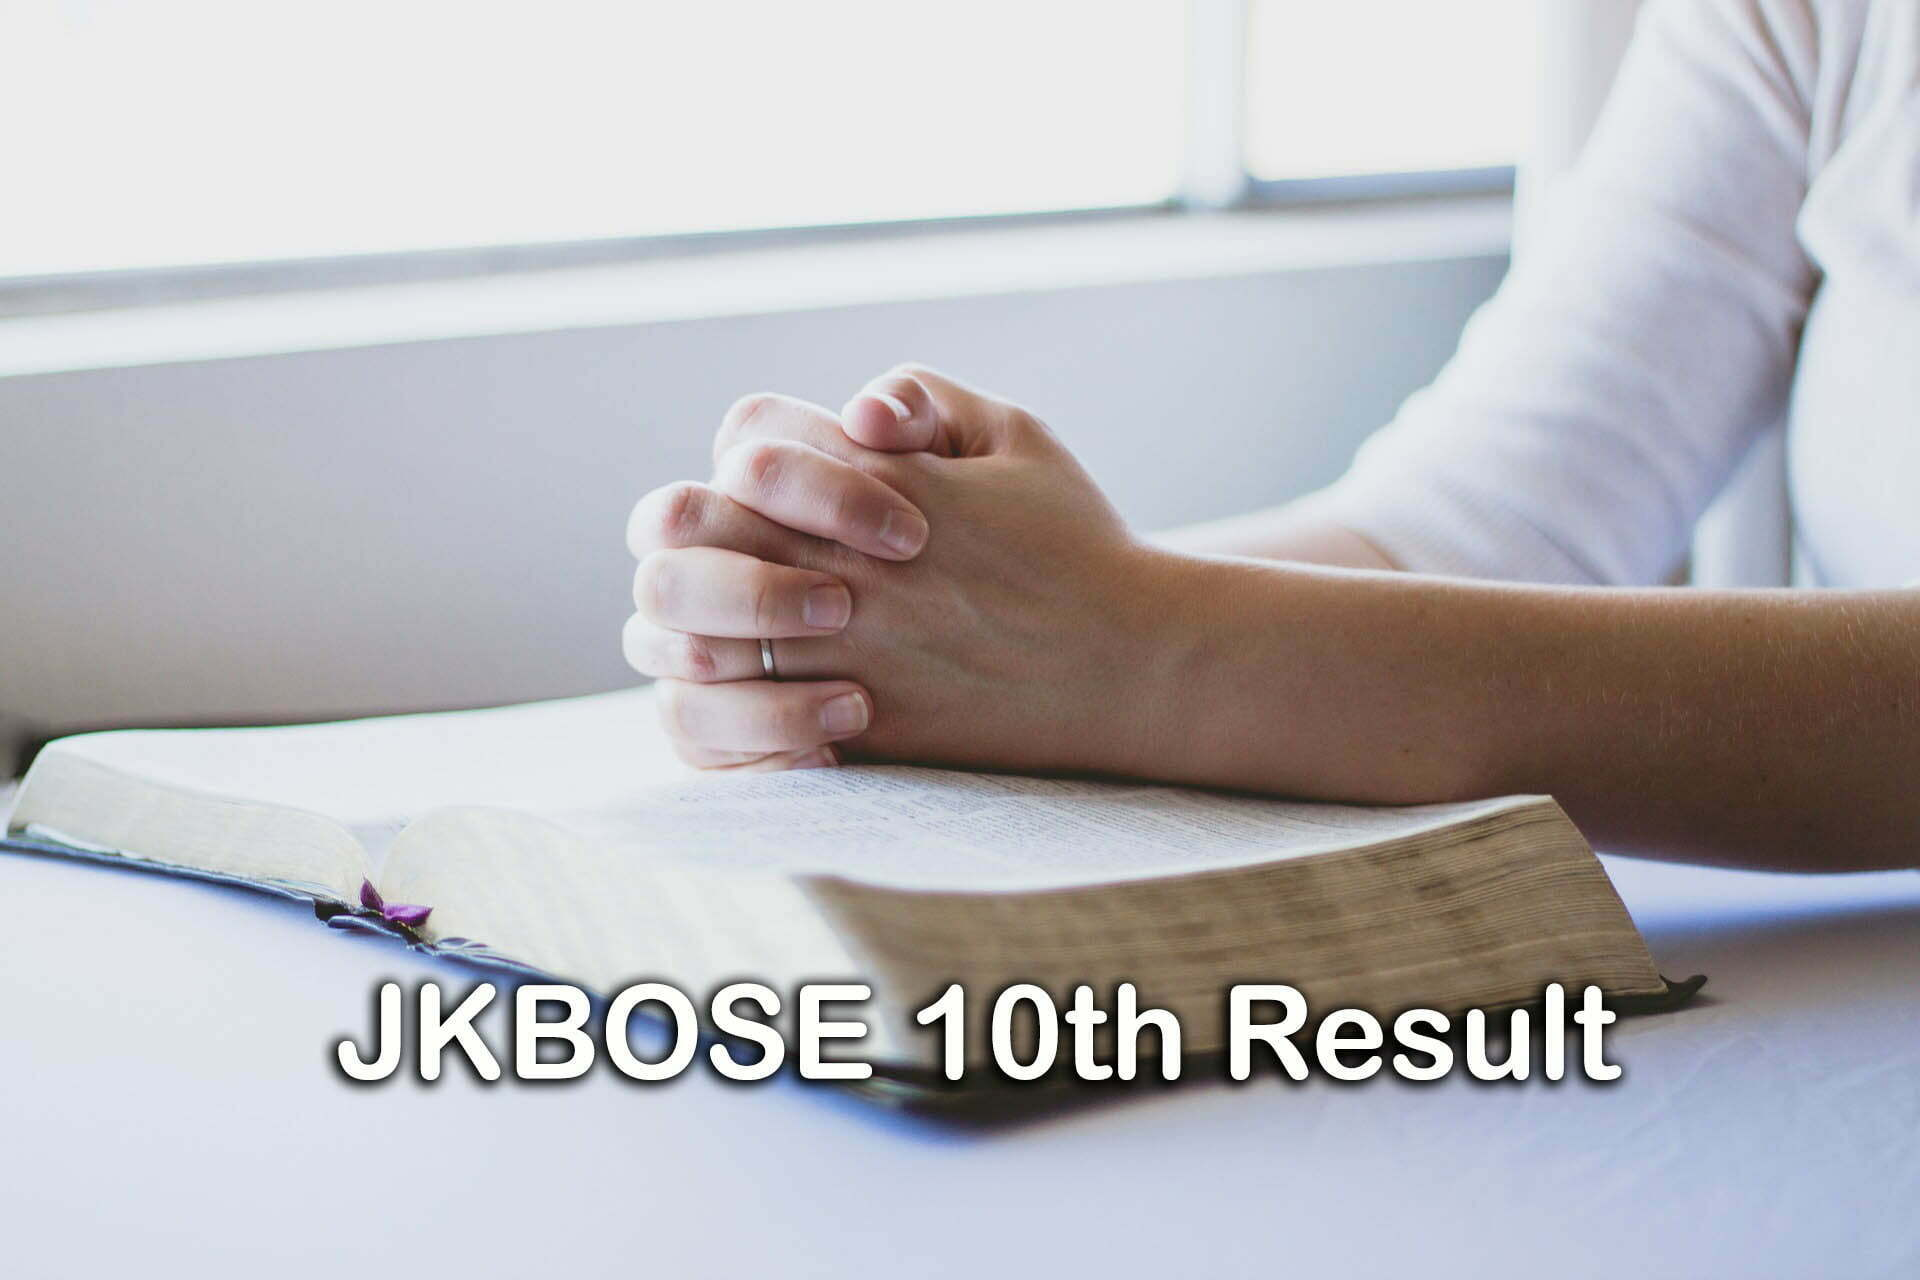 JKBOSE 10th Class Result 2020 : J&K Board 10th Result 2020 Search By Name